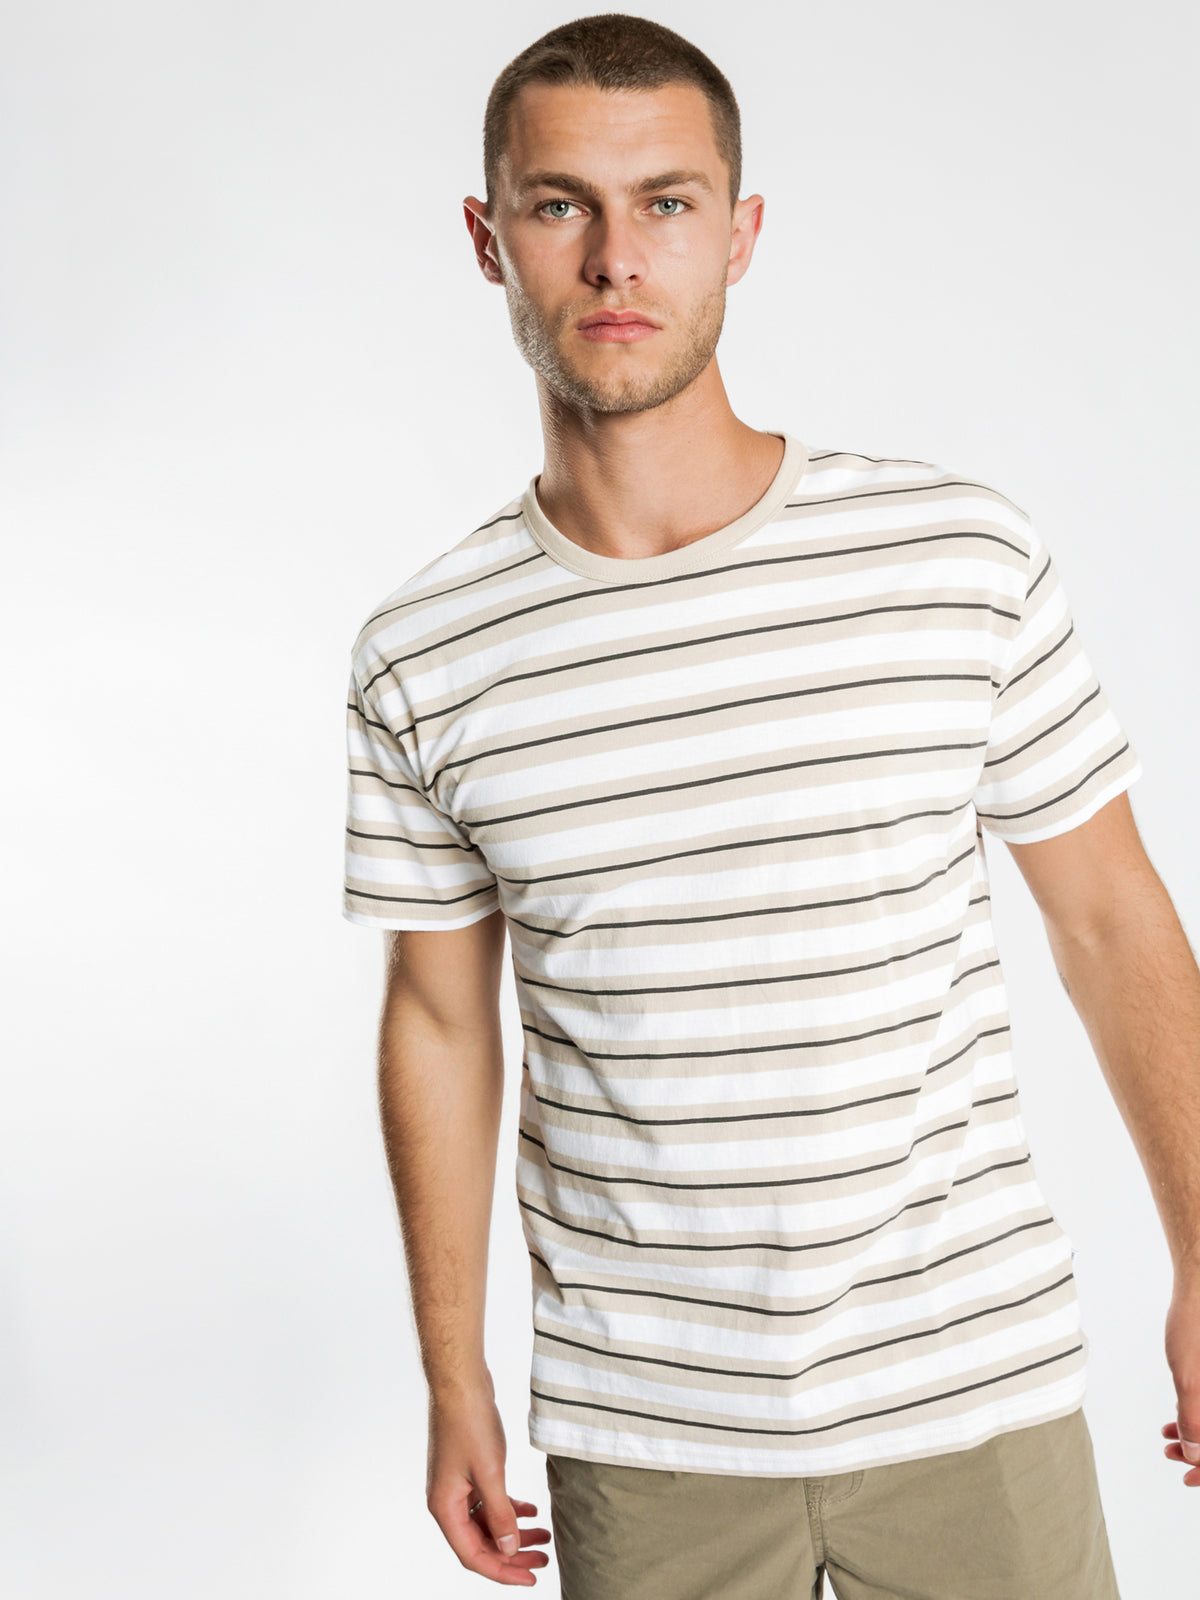 Wanda Stripe T-Shirt in White & Sand